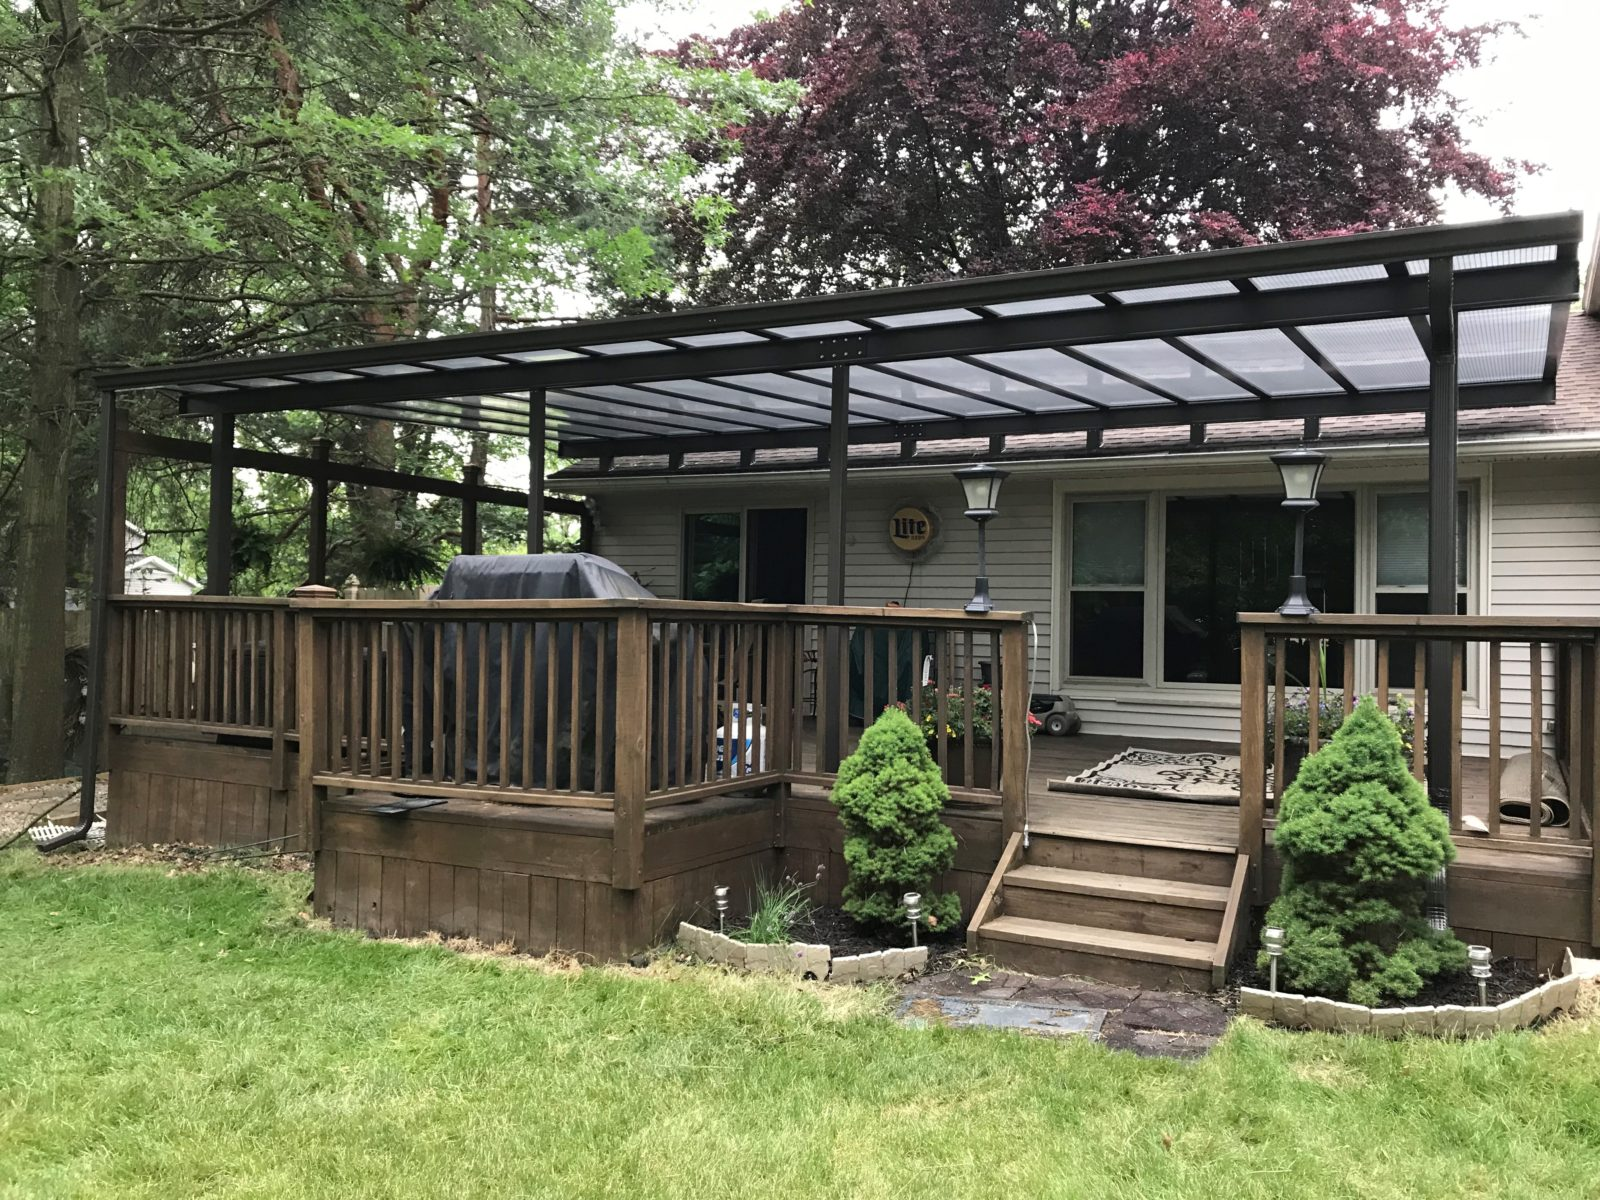 Bright Covers Products Patio Covers Commercial Roof